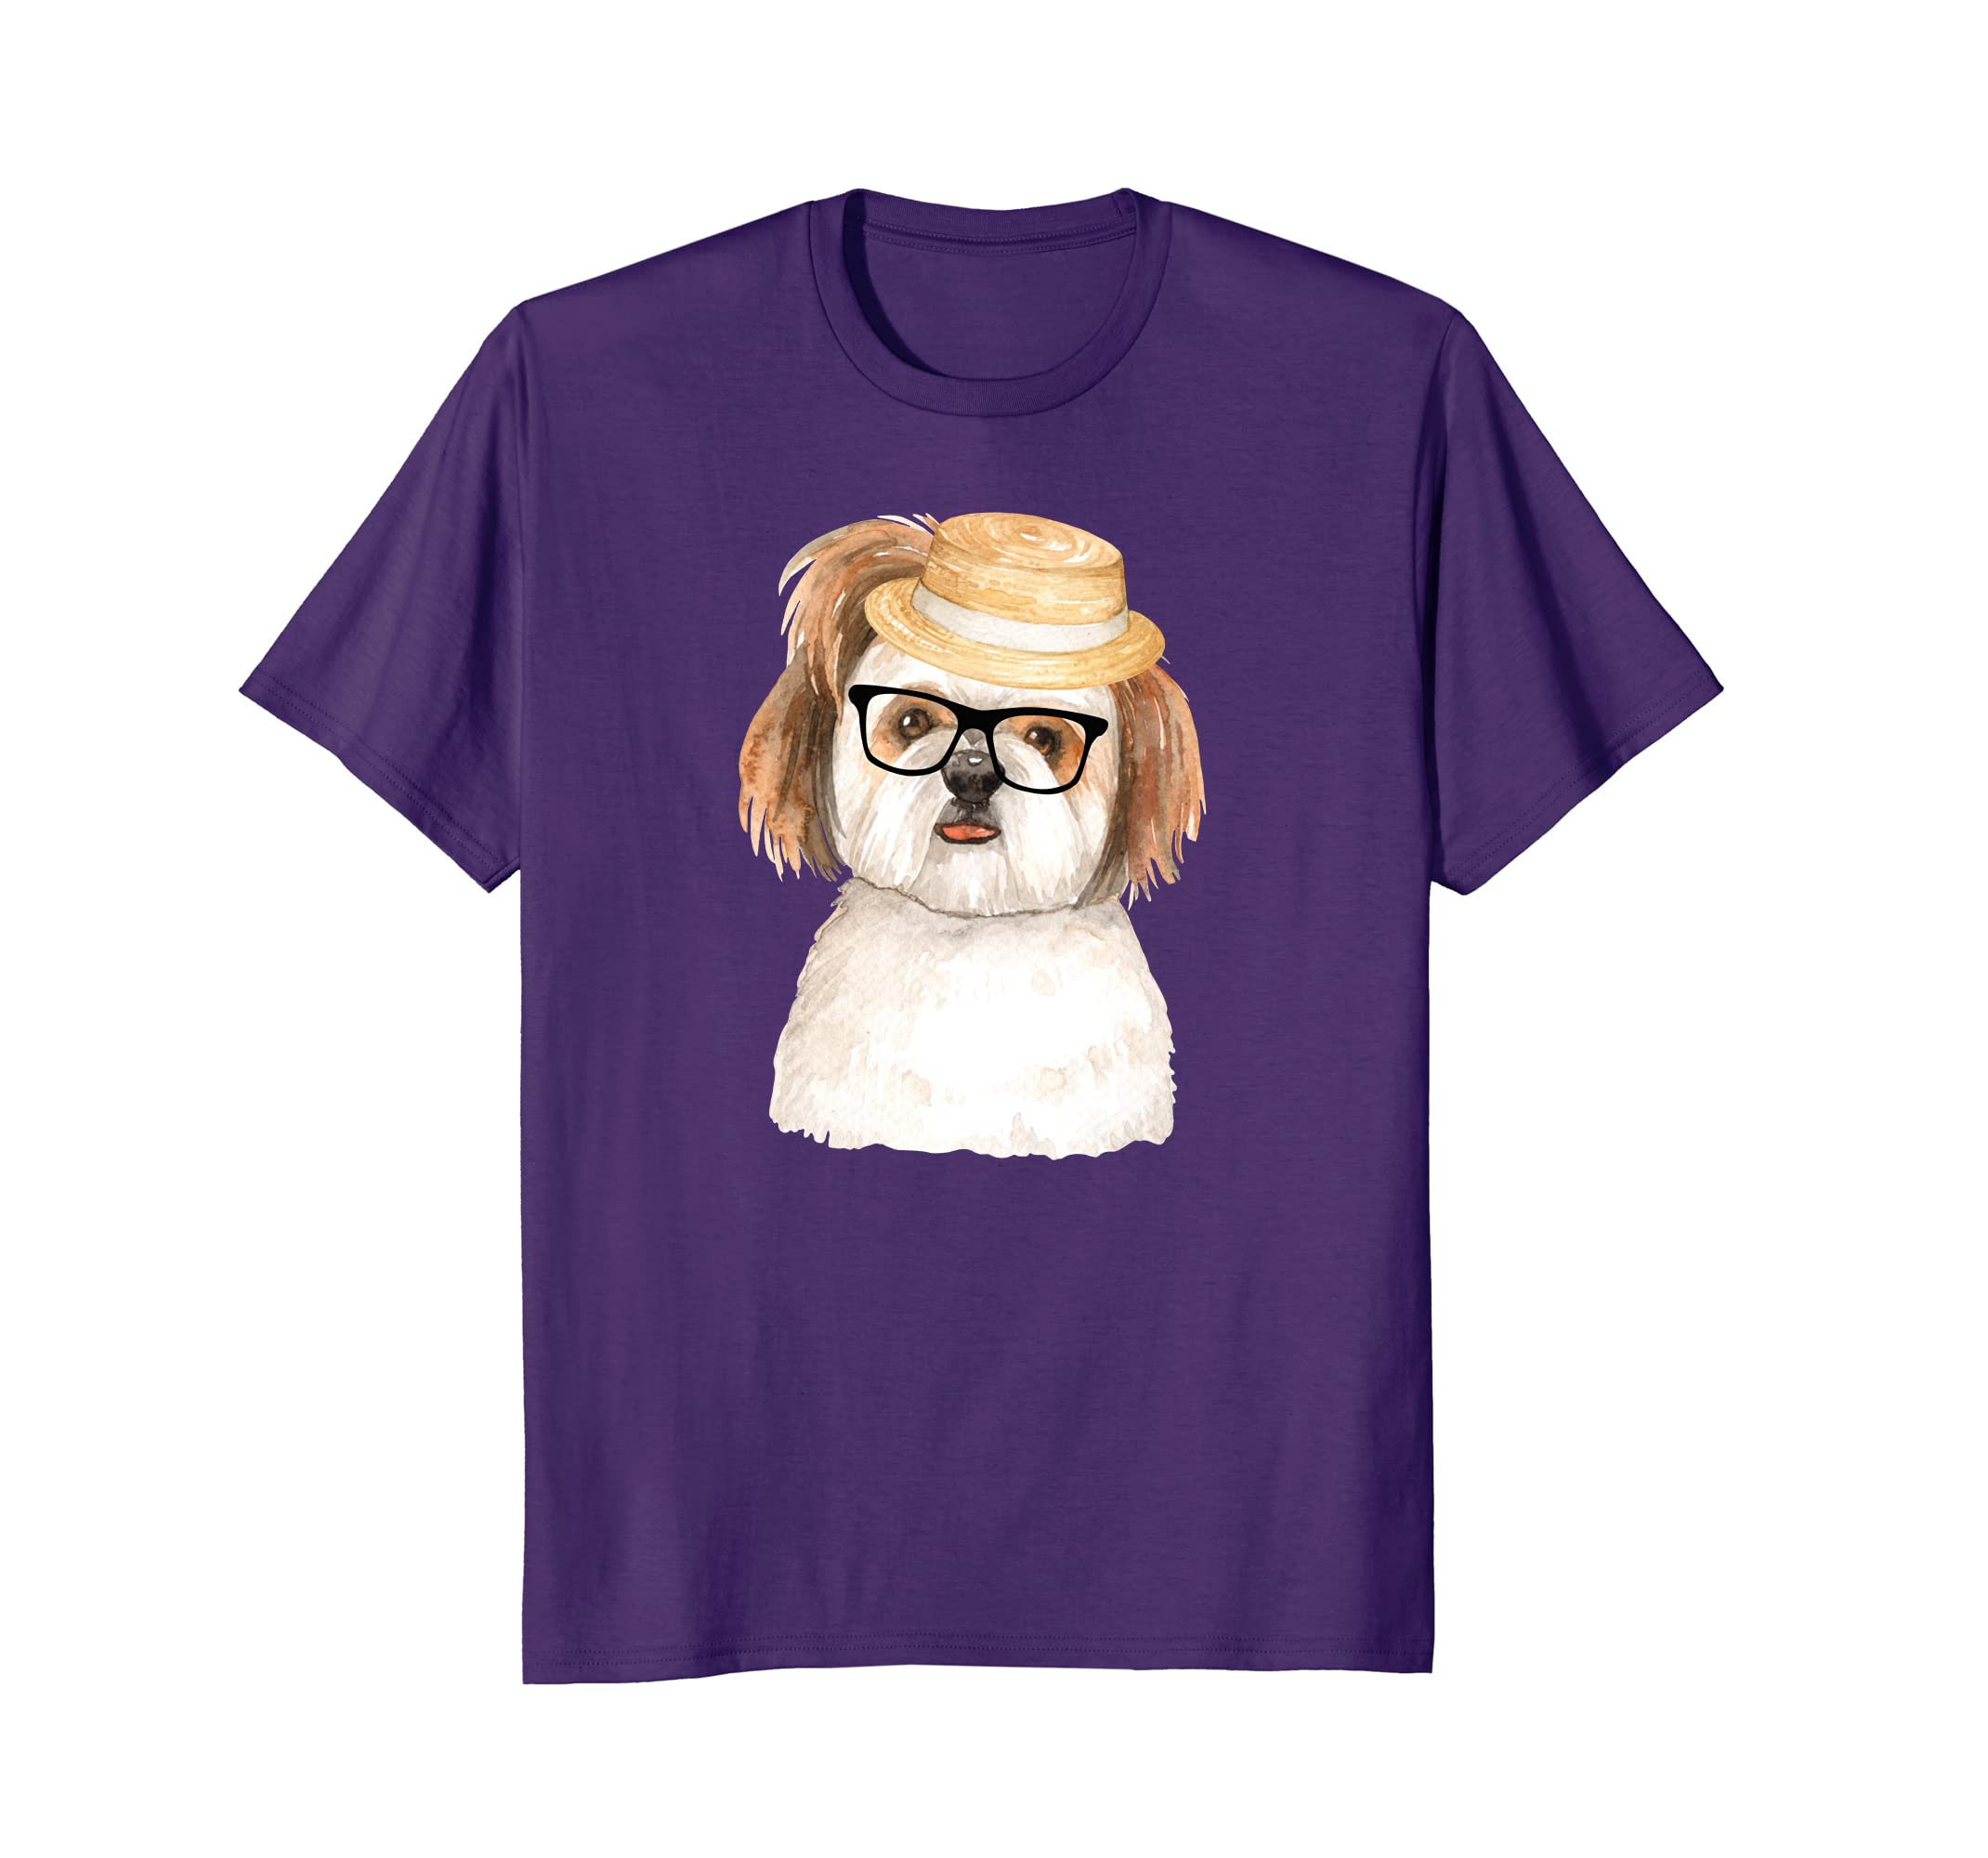 Adorable Shih Tzu Shirt with Hat and Glasses Dog Shirt-ah my shirt one gift